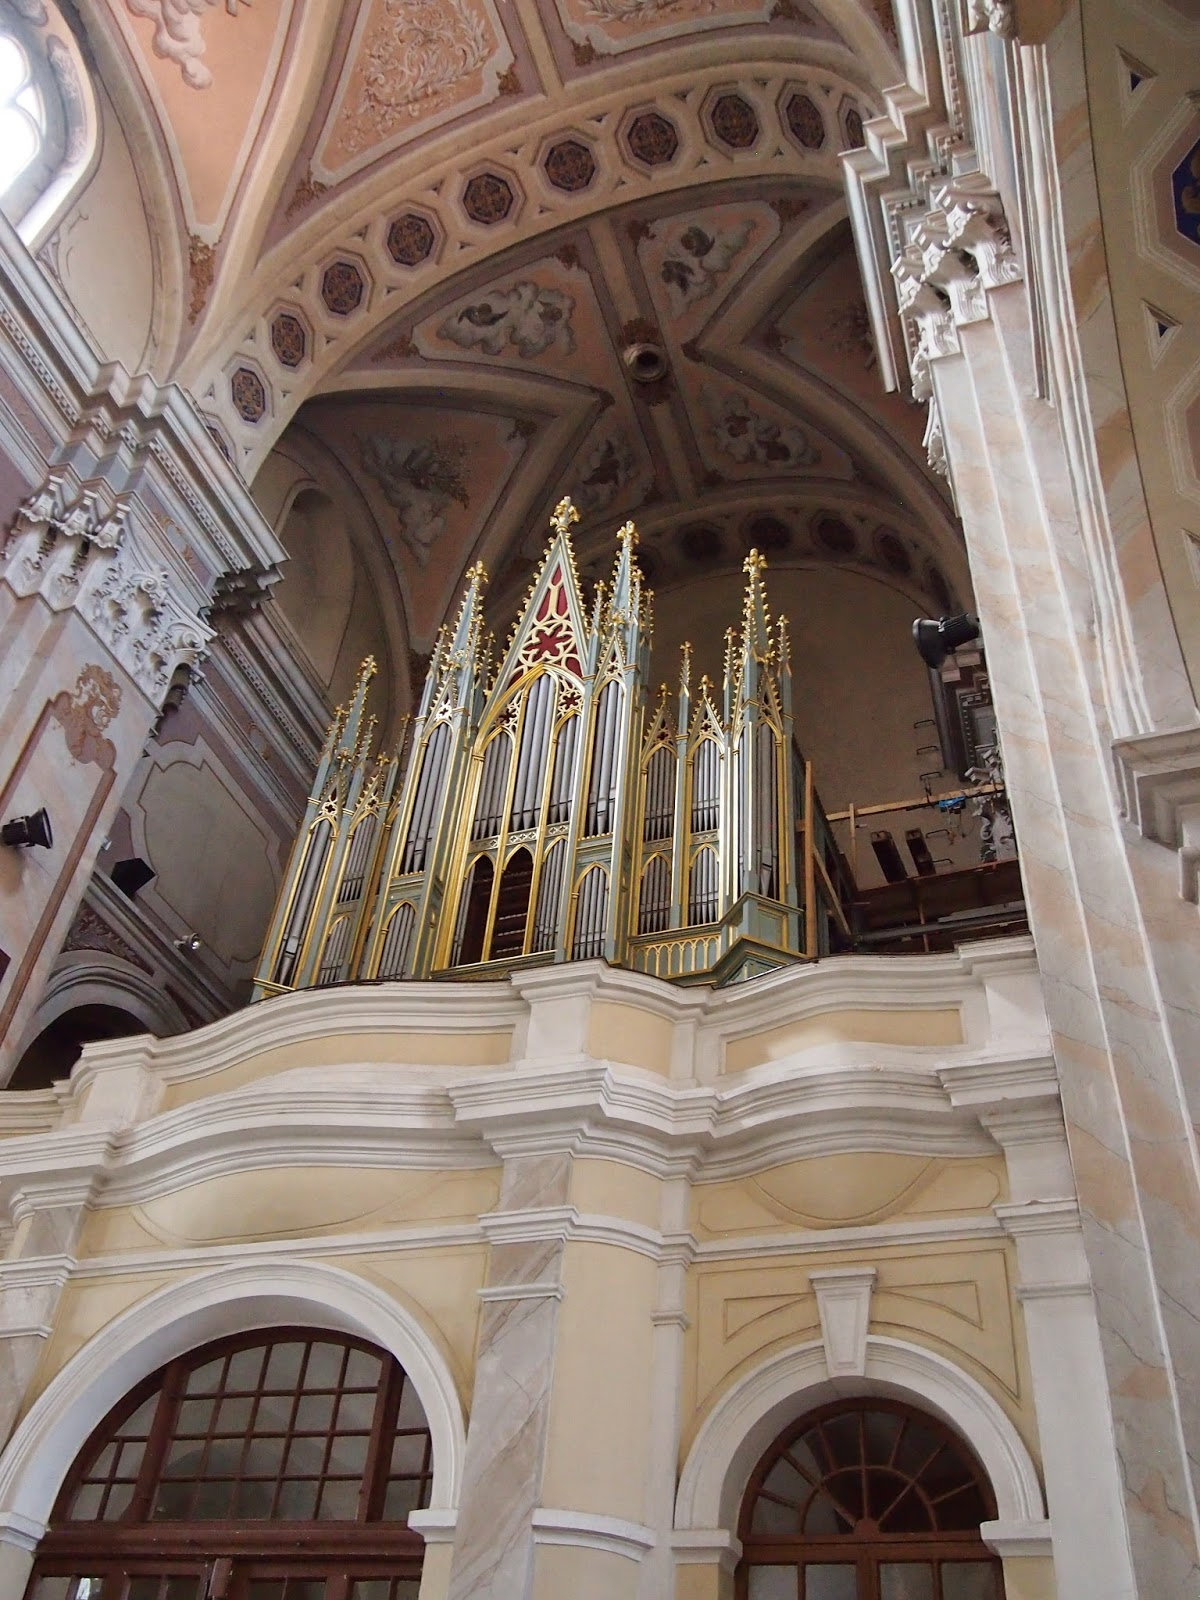 the gilded organ in the Cathedral of Sts. Peter and Paul